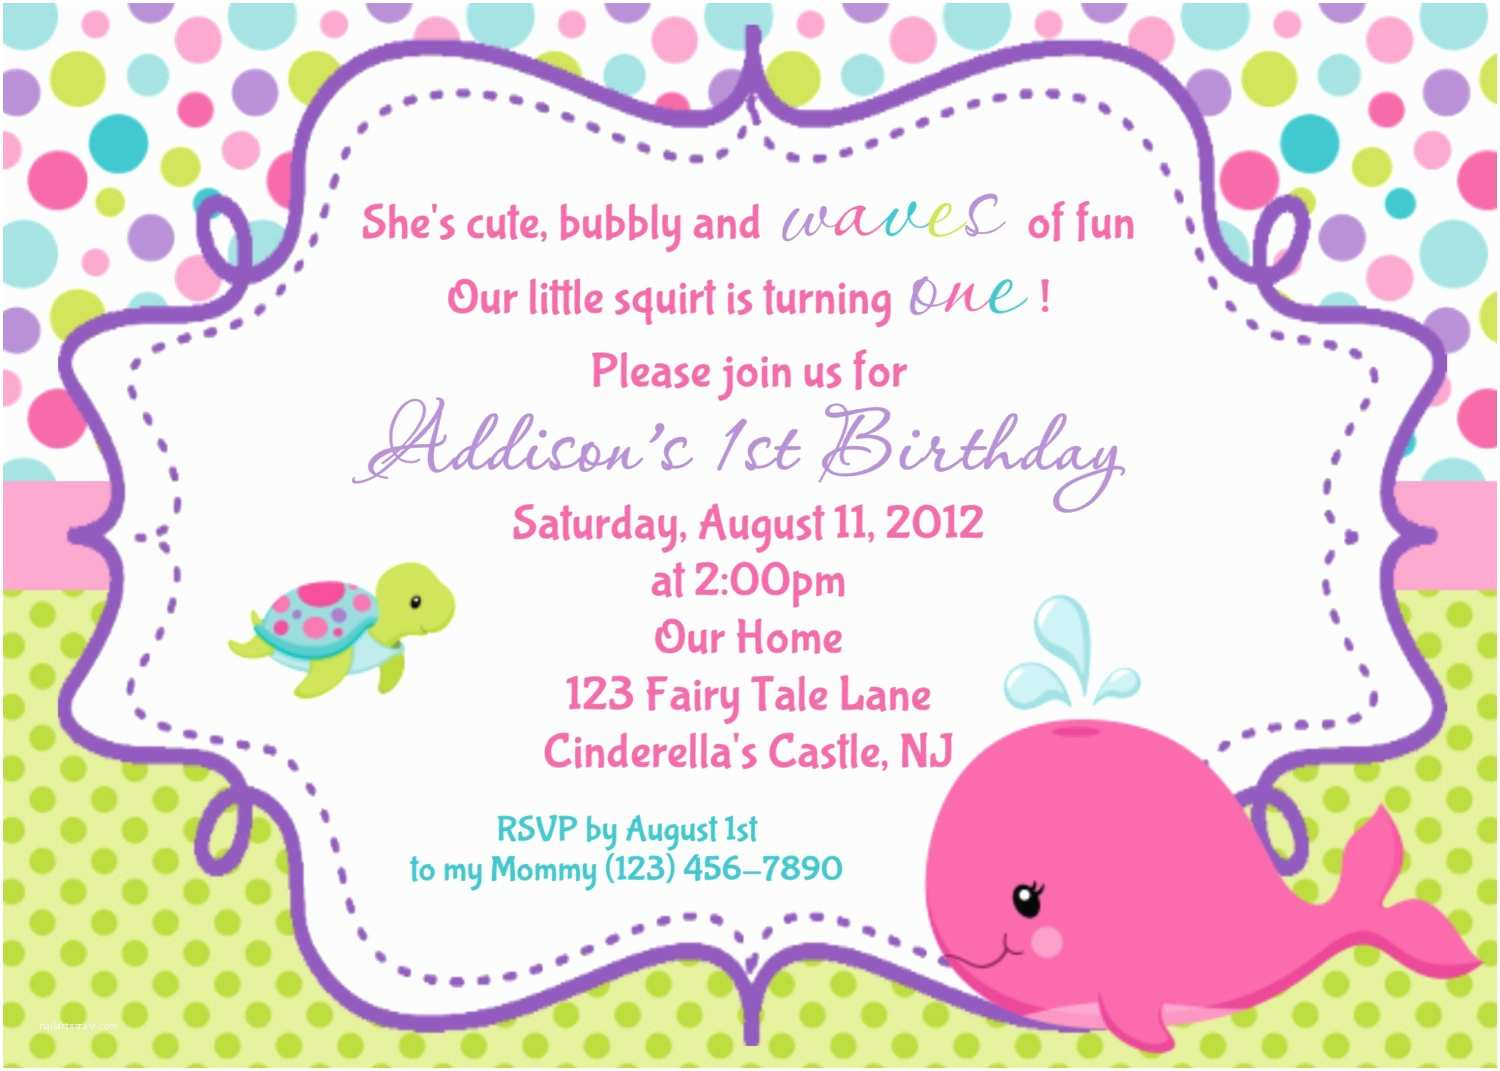 Customized Birthday Invitations Whale Birthday Invitation Personalized by Afairytalebeginning